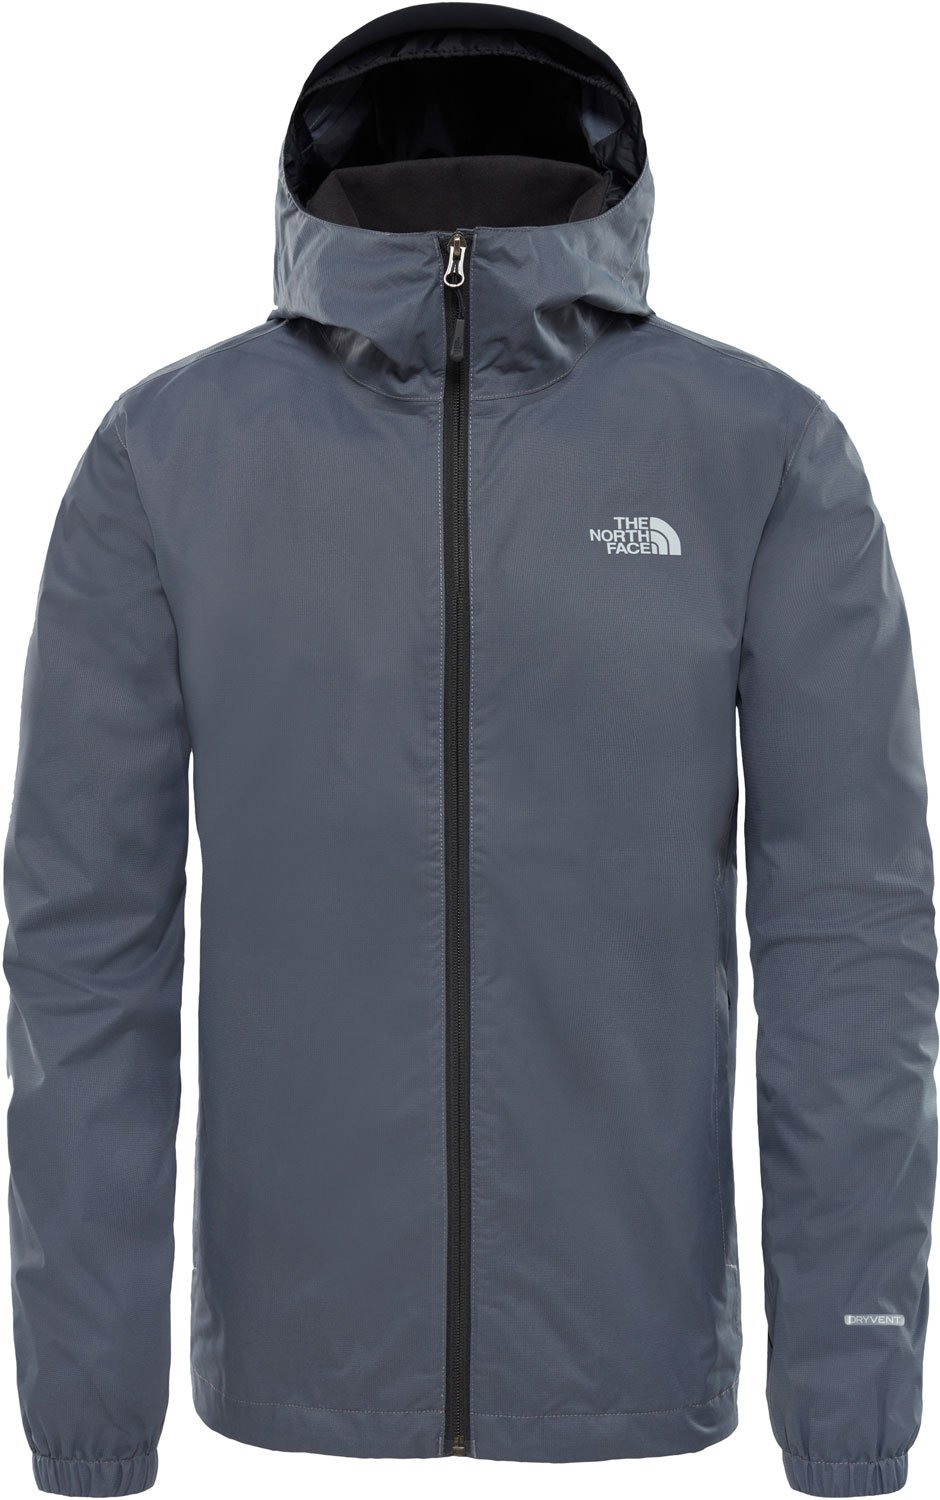 The North Face, M Quest Jkt, Giacca a Vento Softshell, Uomo T0A8AZH2G